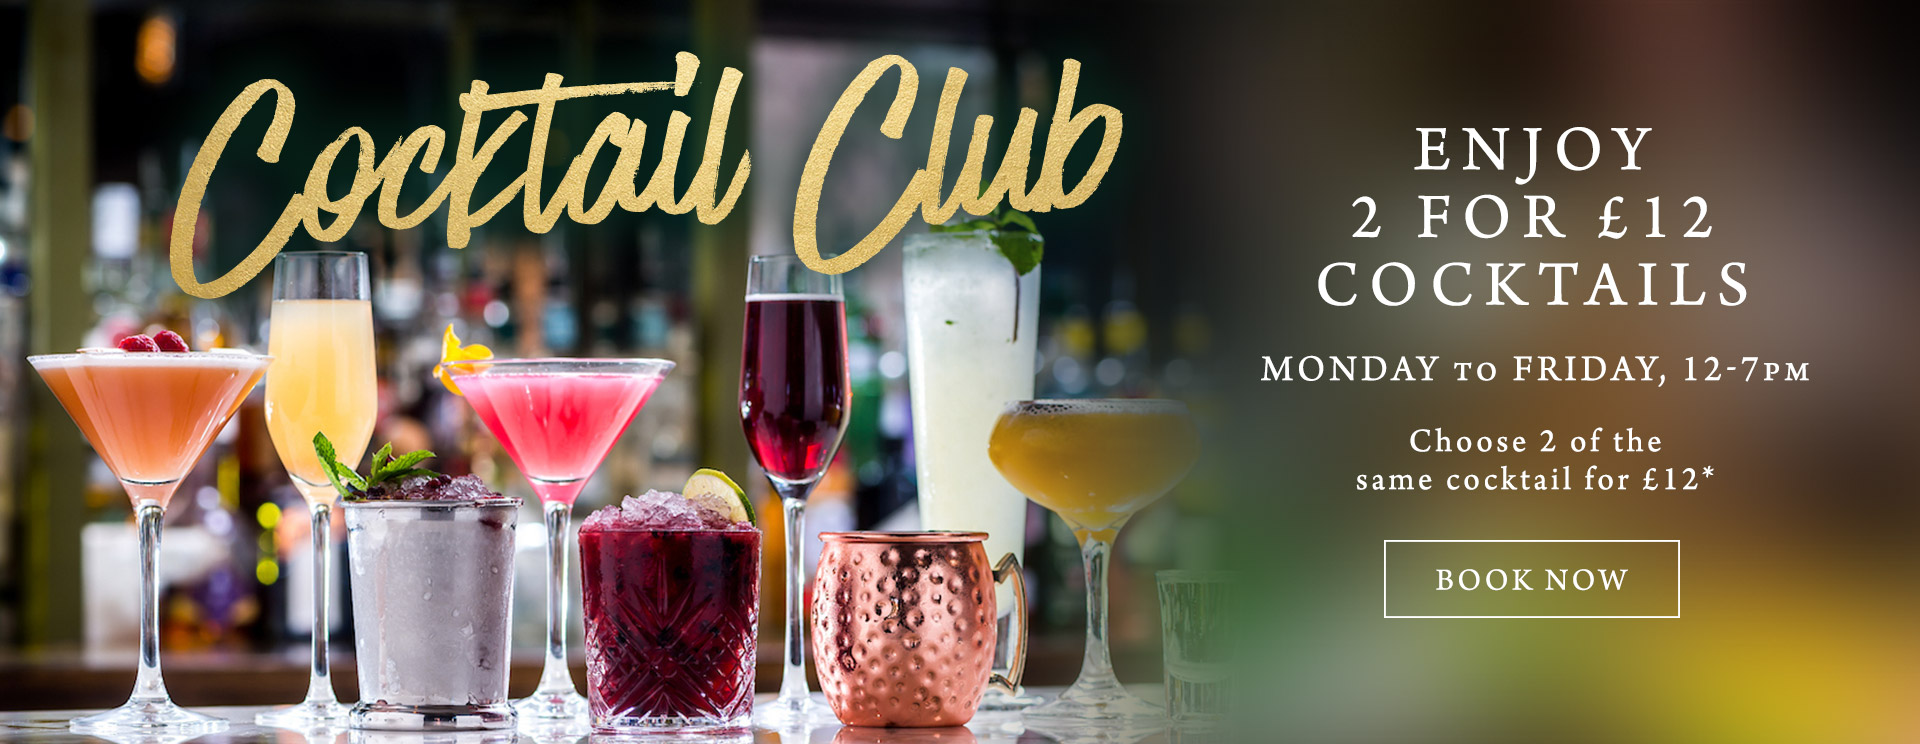 2 for £12 cocktails at The Merlin